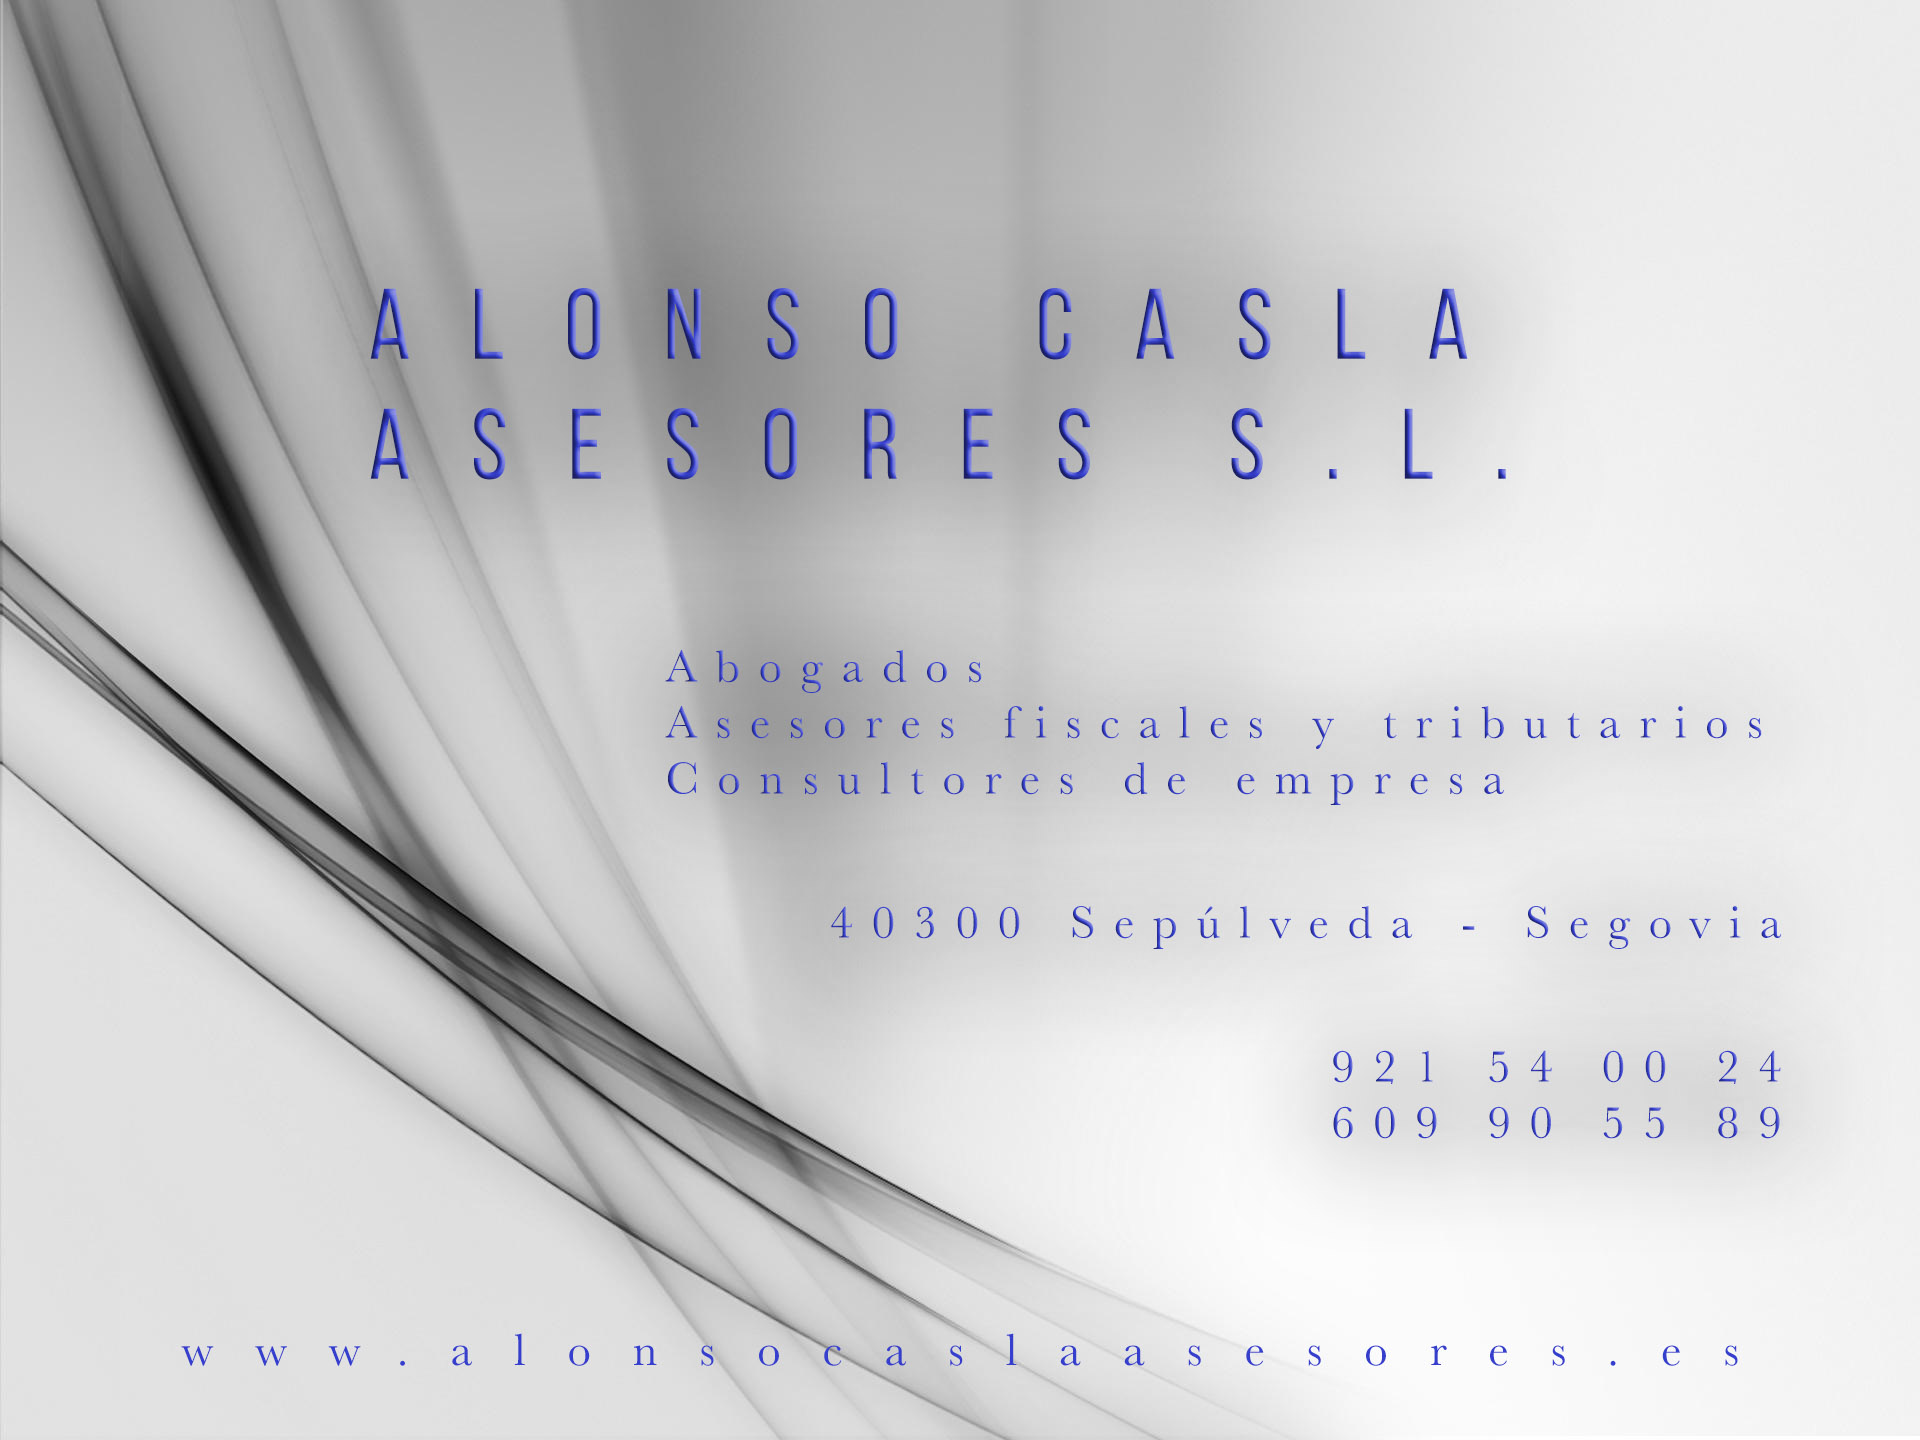 Alonso-Casla-asesores-1b